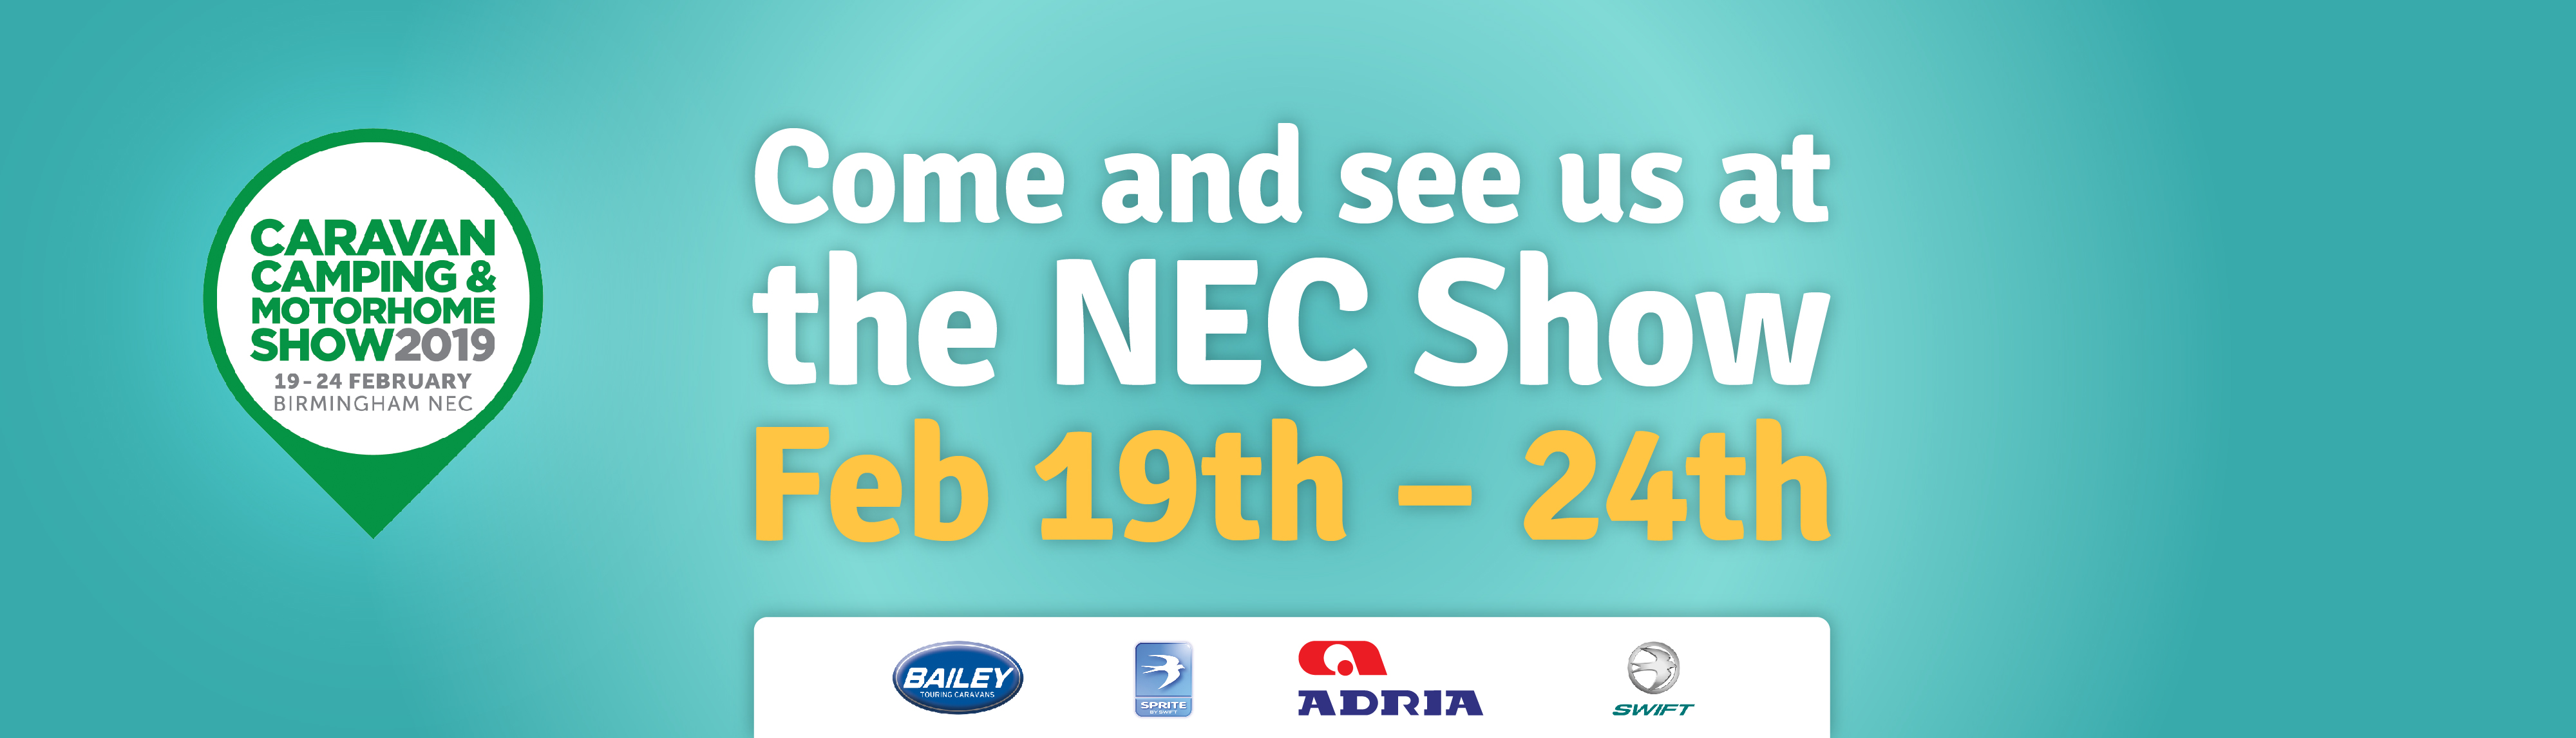 Come at see us at NEC feb 2019